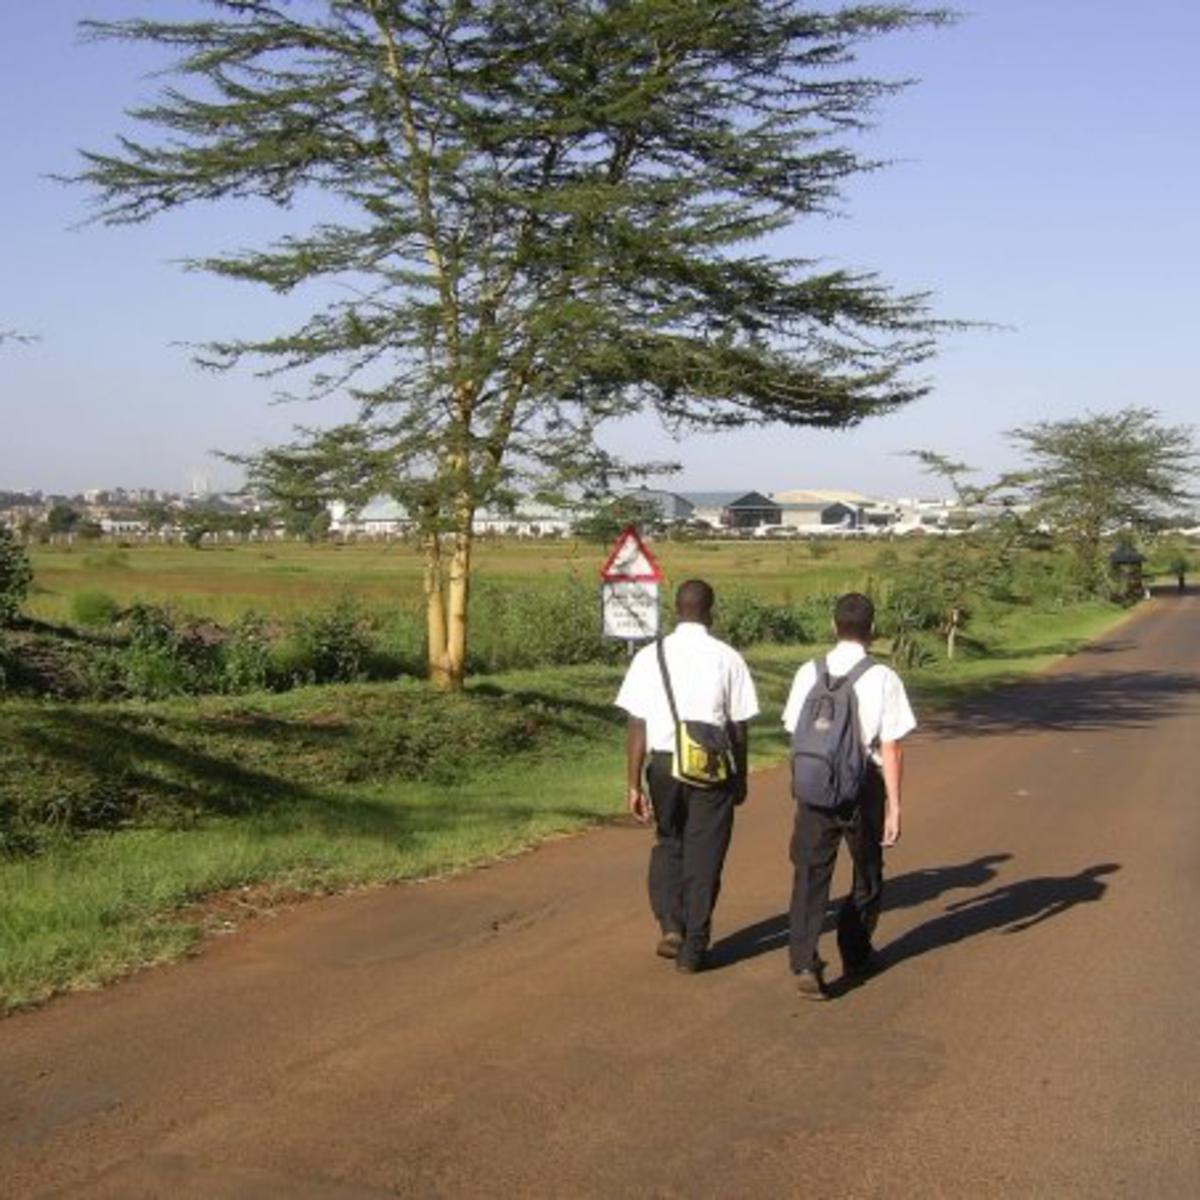 image of missionaries tracting in Kenya